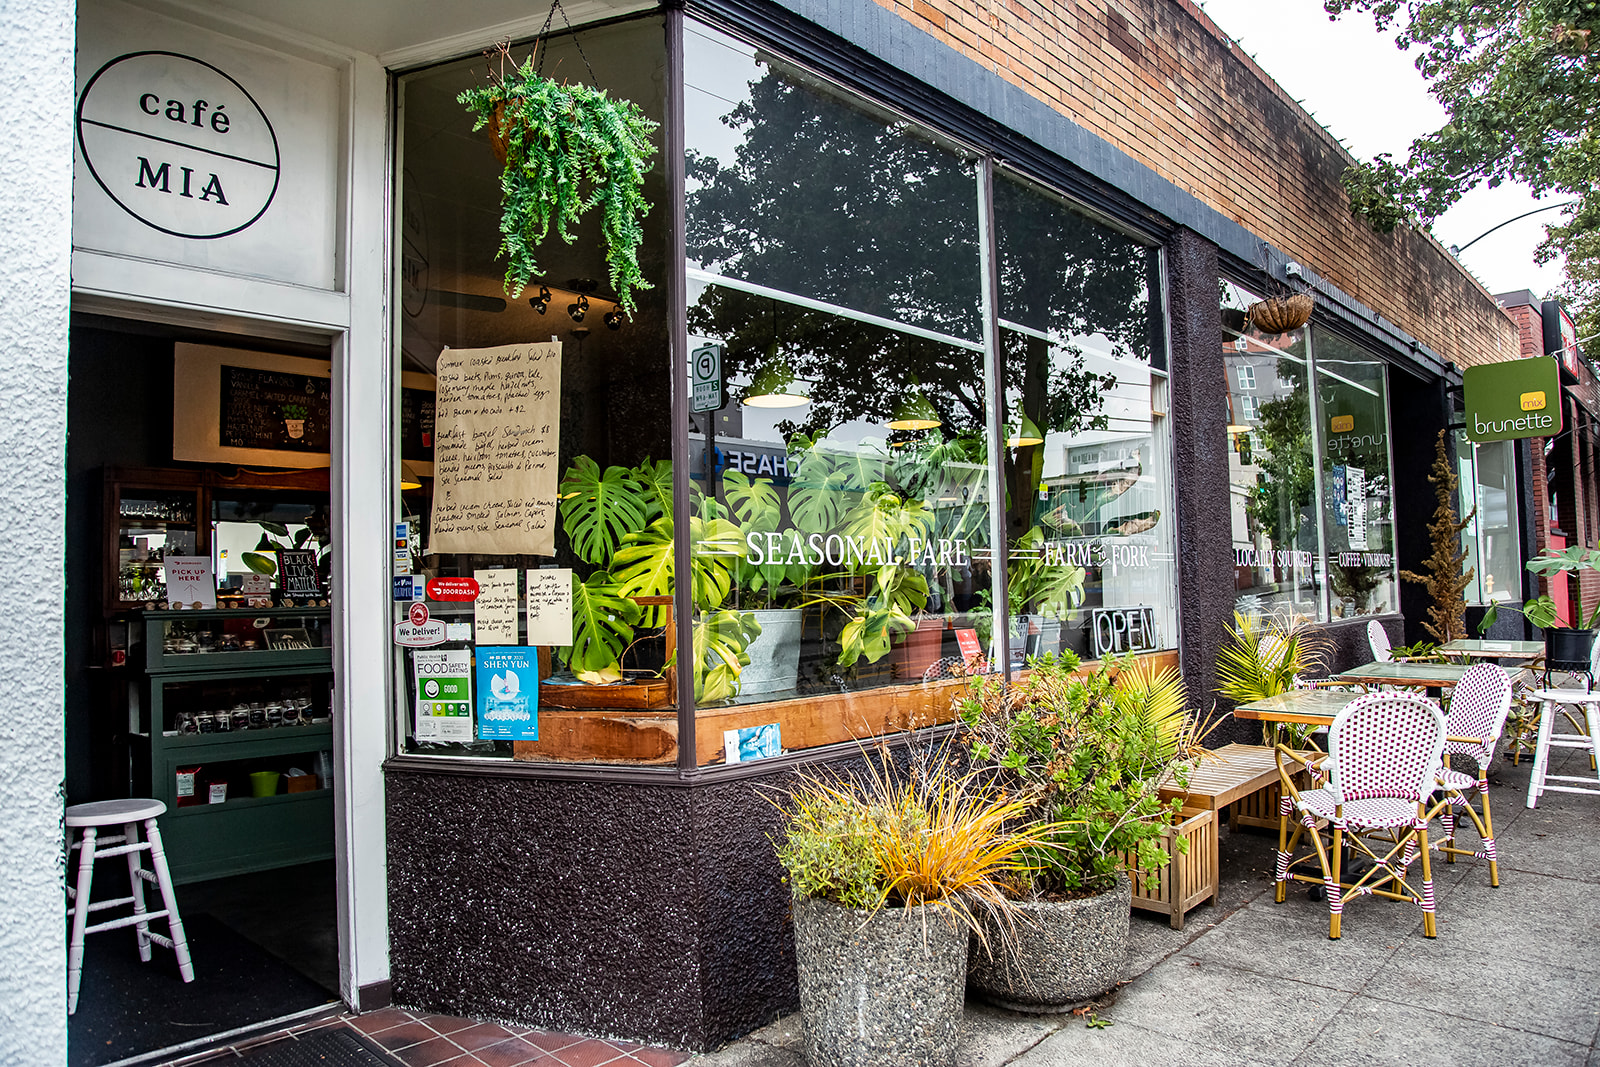 "Cafe Mia features seasonal, locally-sourced and ethical cuisine - every dish is prepared in house by Mia herself. Cafe Mia is tucked away near the West Seattle Junction on SW Oregon Street. The perfect spot for brunch after hitting the farmers market on Sunday! Find them on Instagram{&nbsp;}<a  href=""https://www.instagram.com/cafe.mia/?hl=en"" target=""_blank"" title=""https://www.instagram.com/cafe.mia/?hl=en"">@cafe.mia</a>. (Image:{&nbsp;}Samantha Witt / Seattle Refined)"